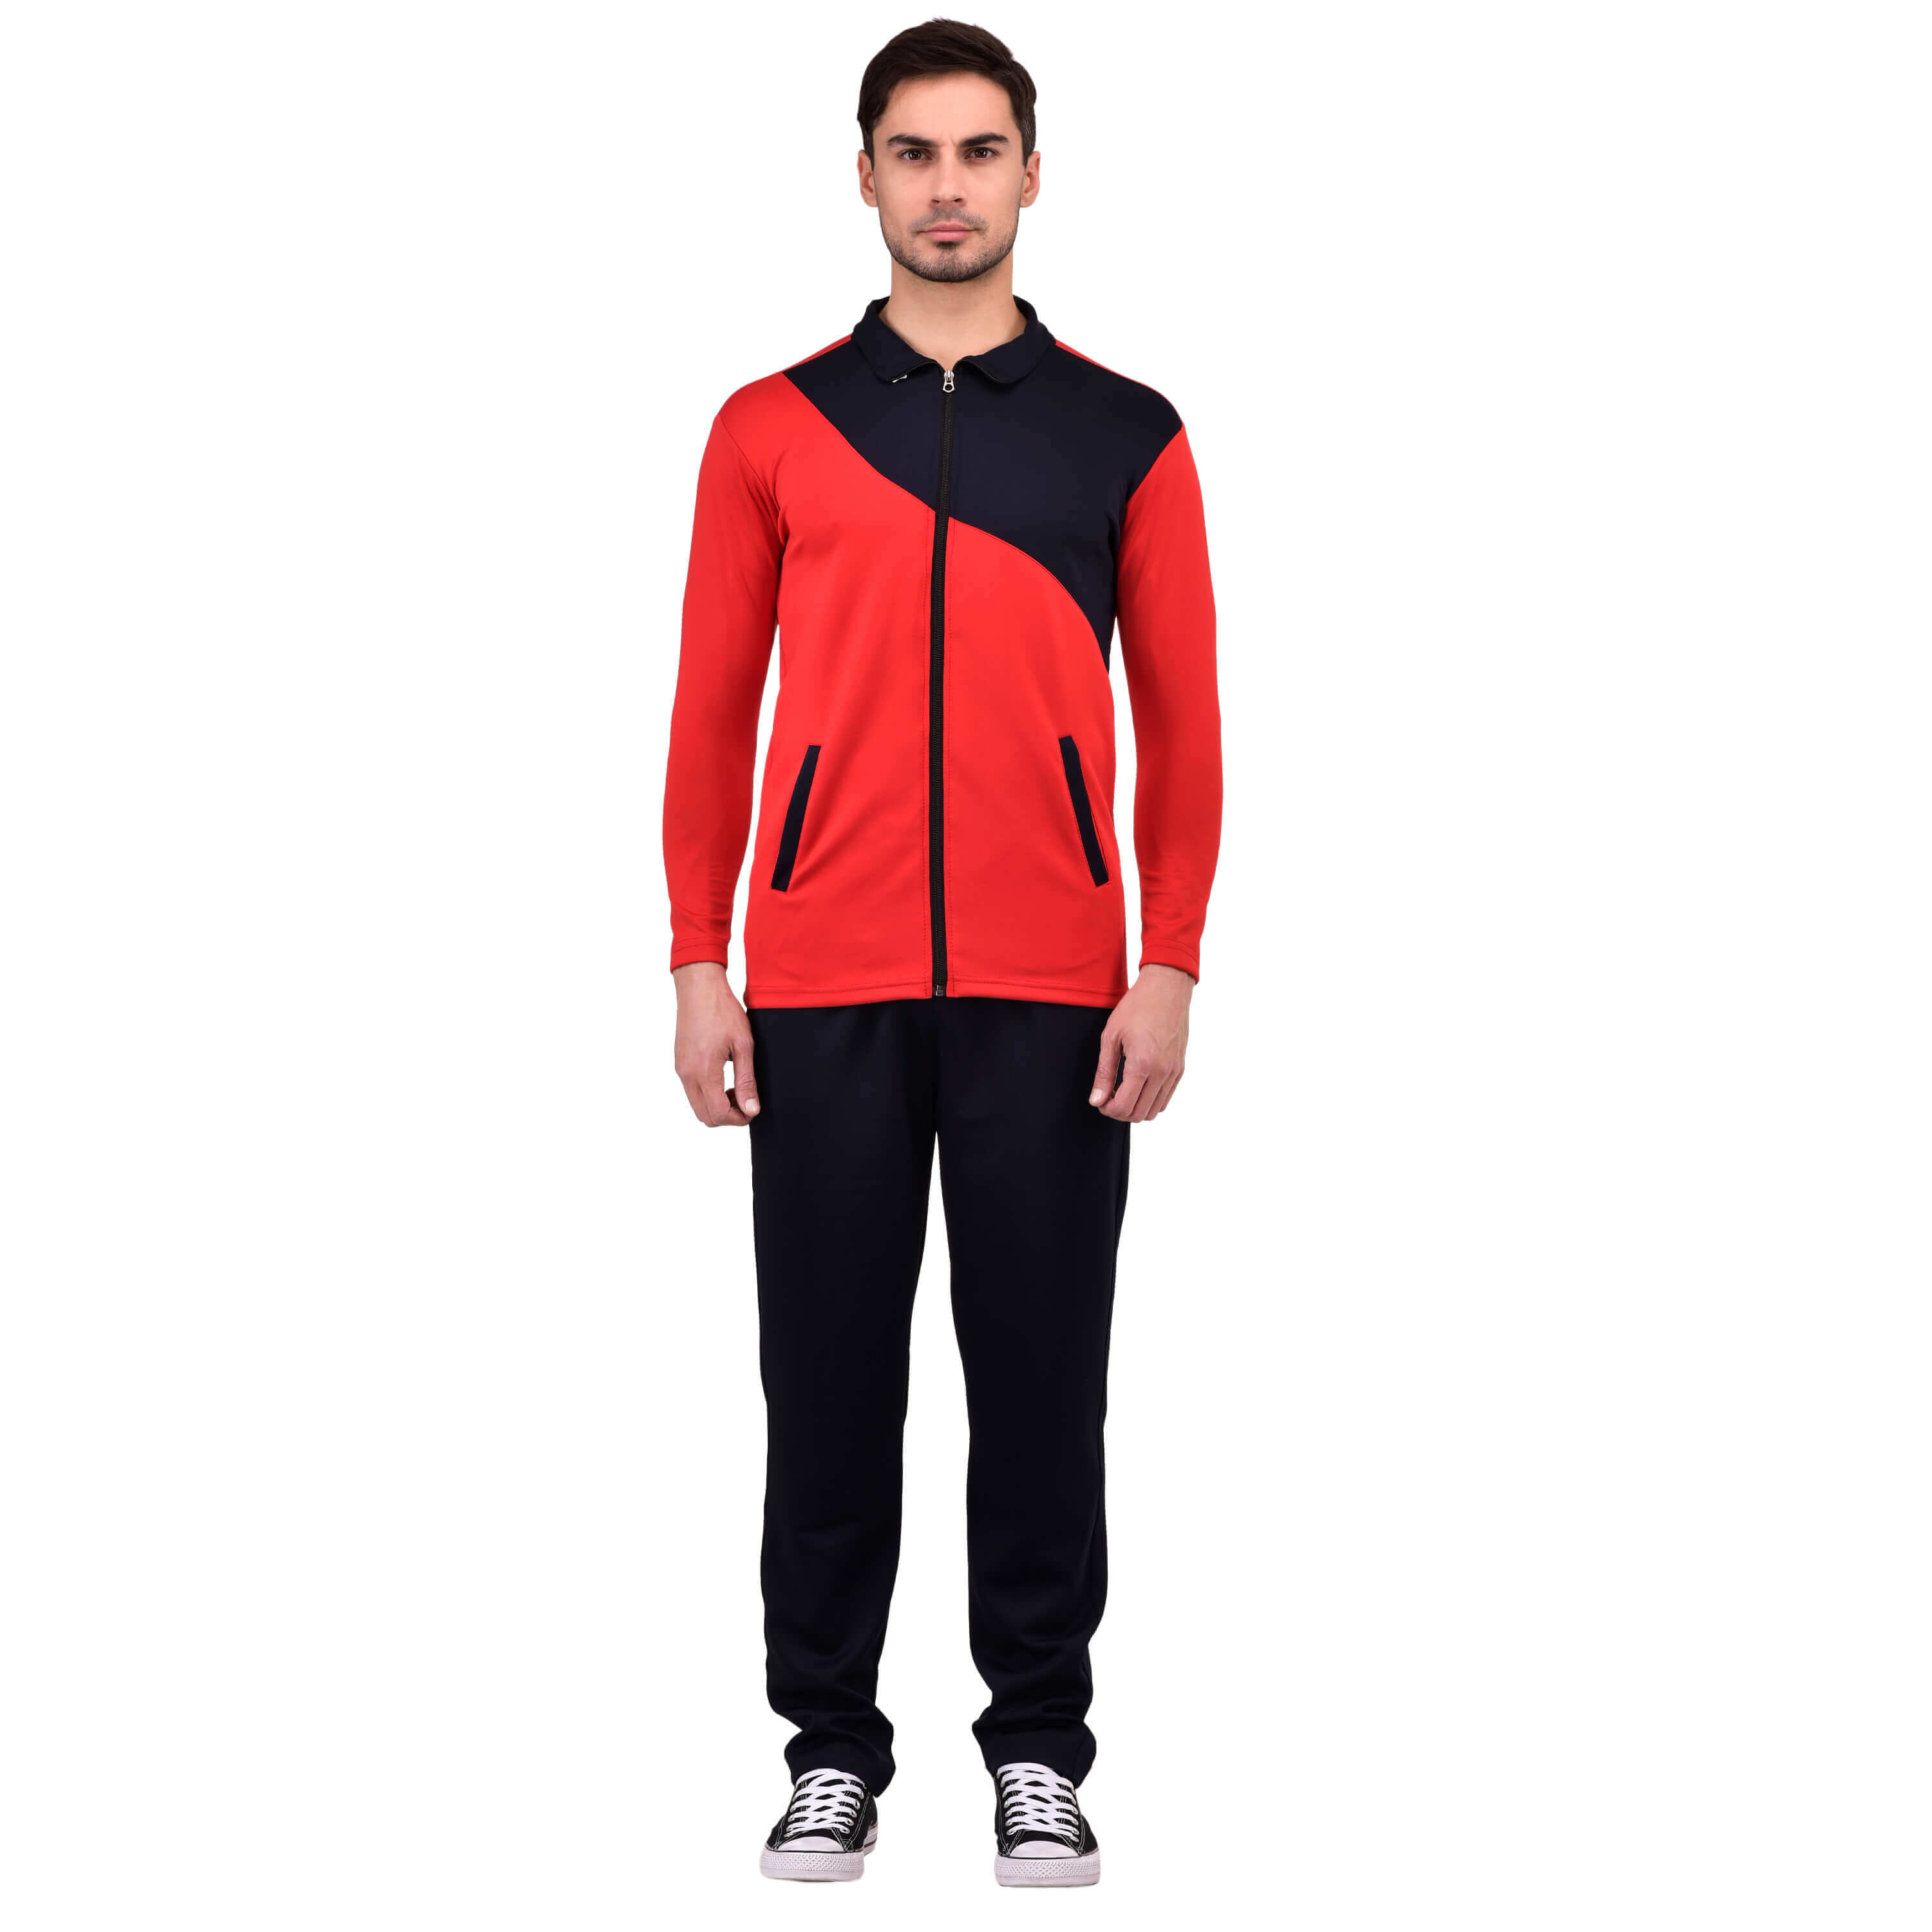 Mens Jogging Suits Manufacturers in Bolivia